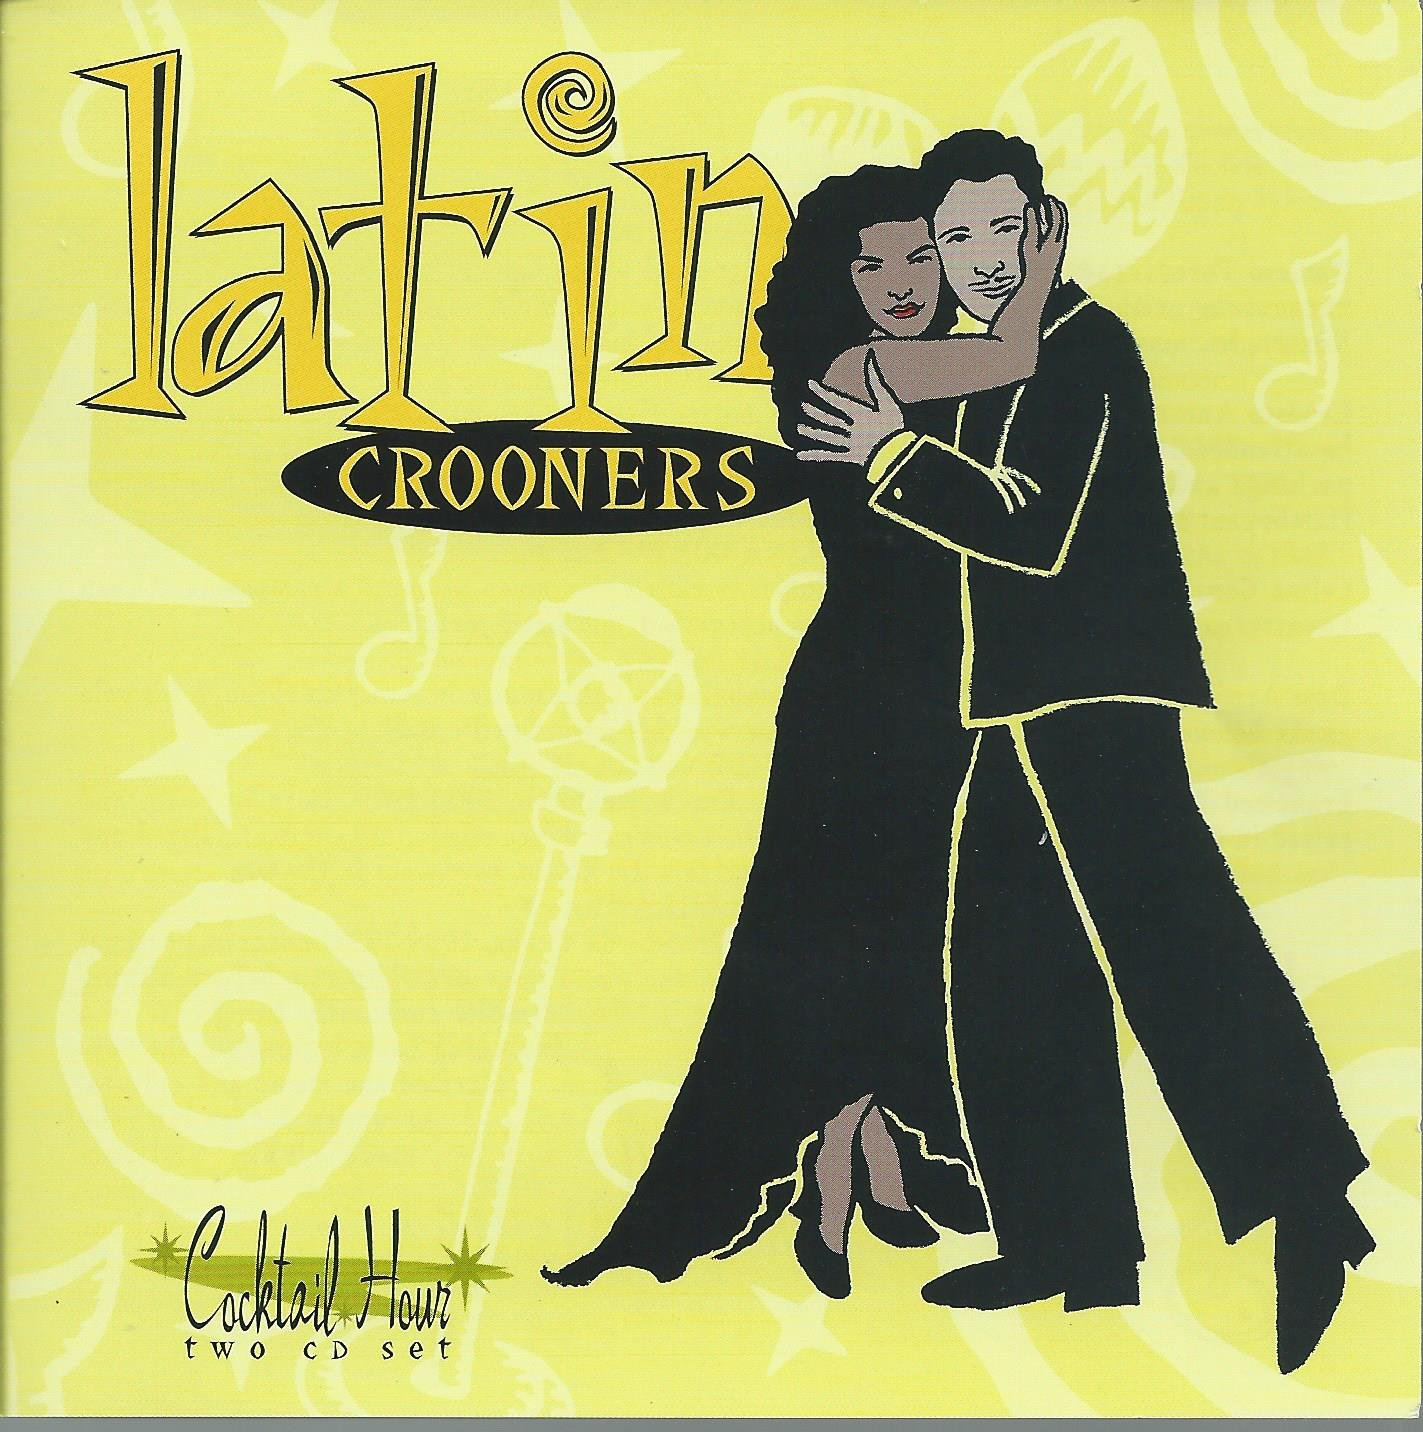 Latin Limited Special Price Crooners Hour Cocktail Max 62% OFF